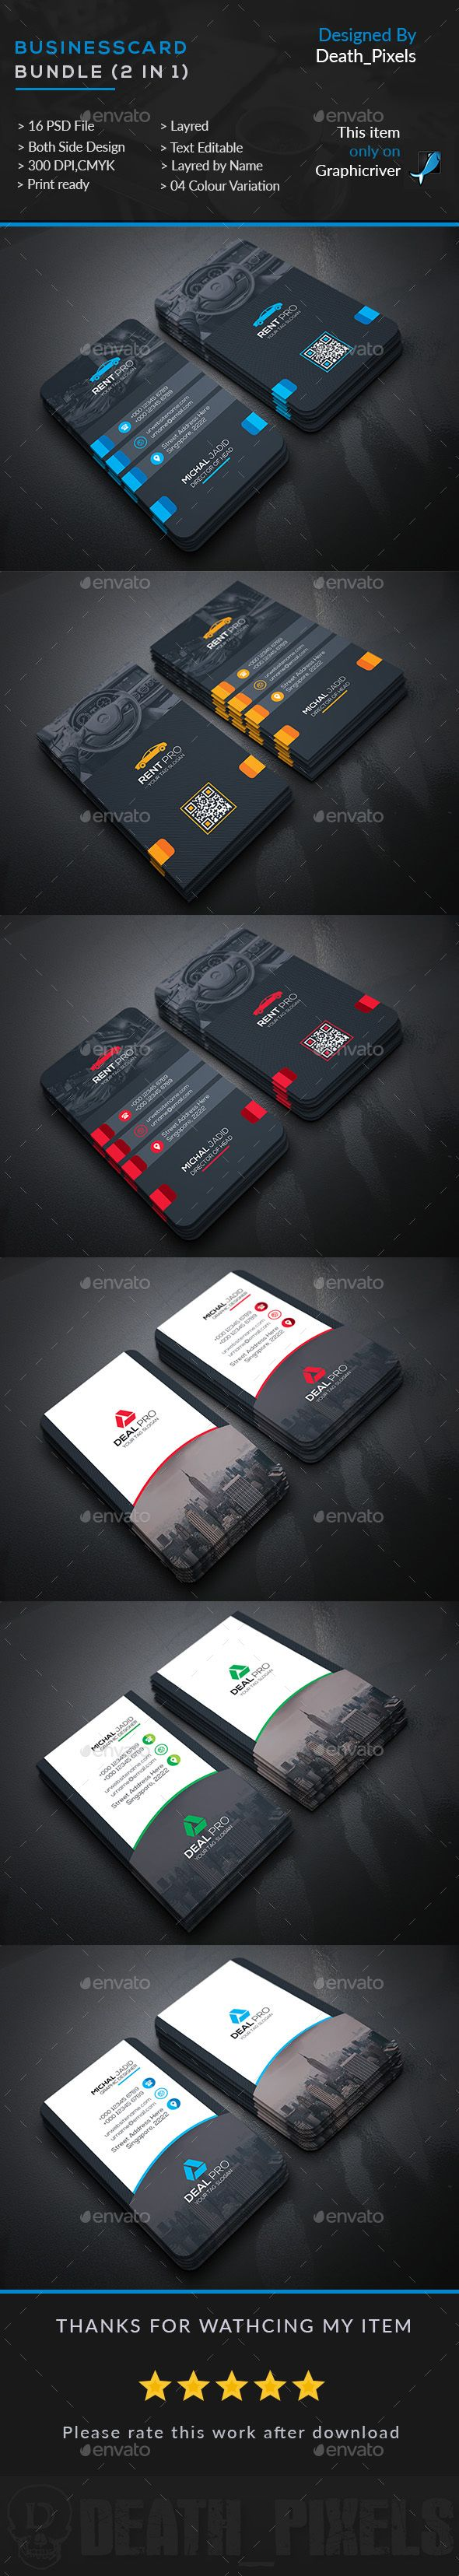 Business Card Bundle (2 in 1)  — PSD Template #car #rental  • Download ➝ https://graphicriver.net/item/business-card-bundle-2-in-1/17895743?ref=pxcr